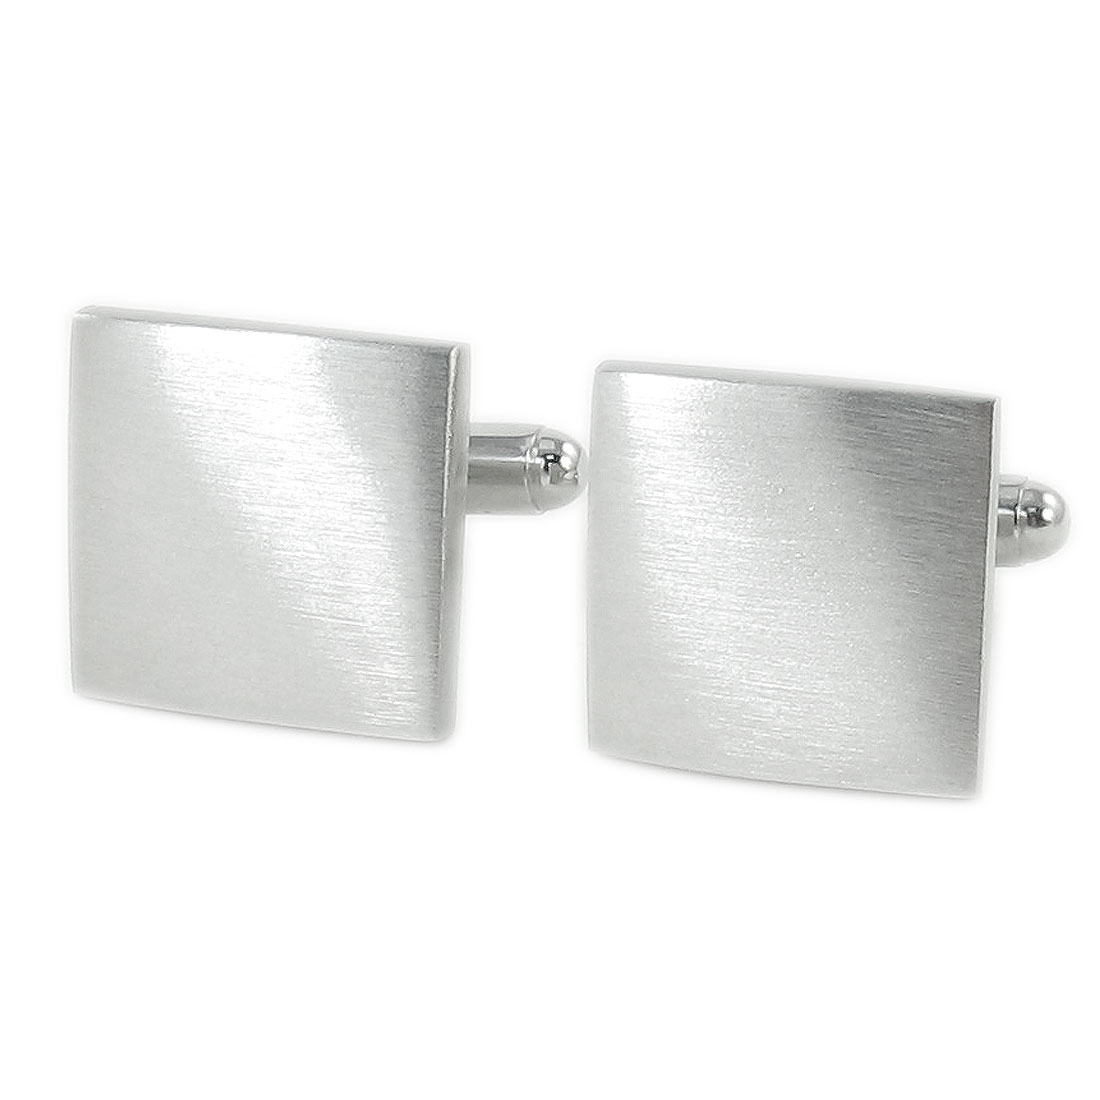 Pair Square Silver Tone Metal Tuxedo Decor Cufflinks Cuff Links for Groom Man